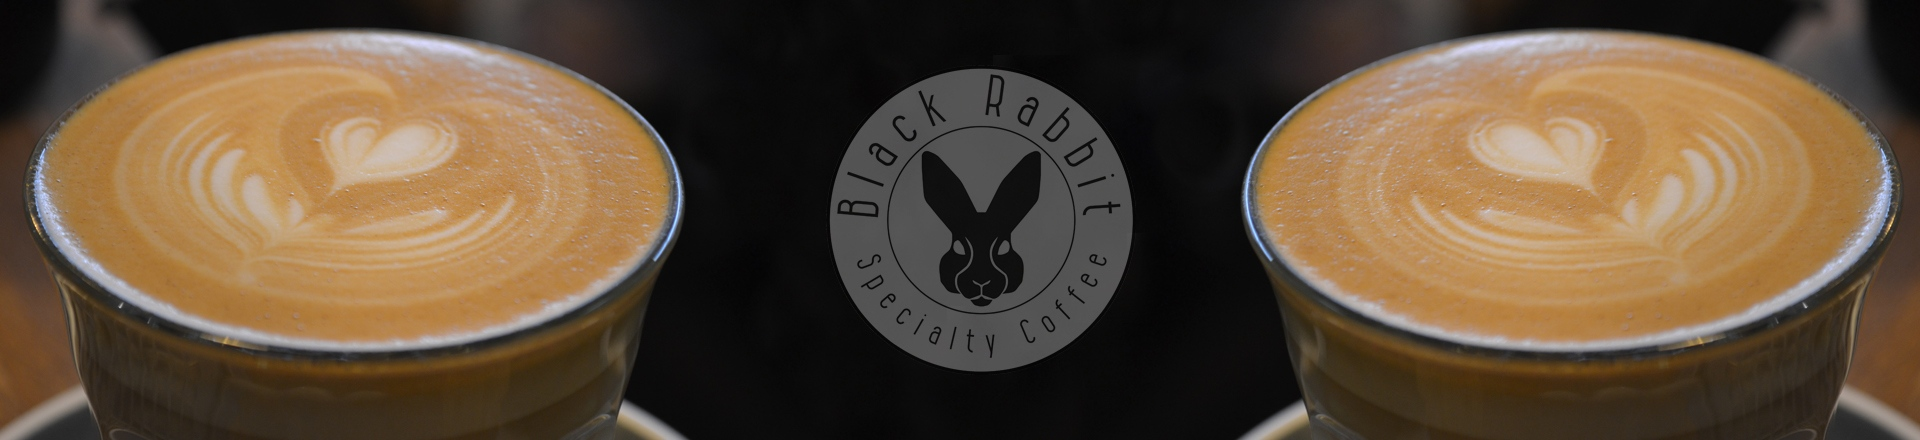 About Black Rabbit Cafe